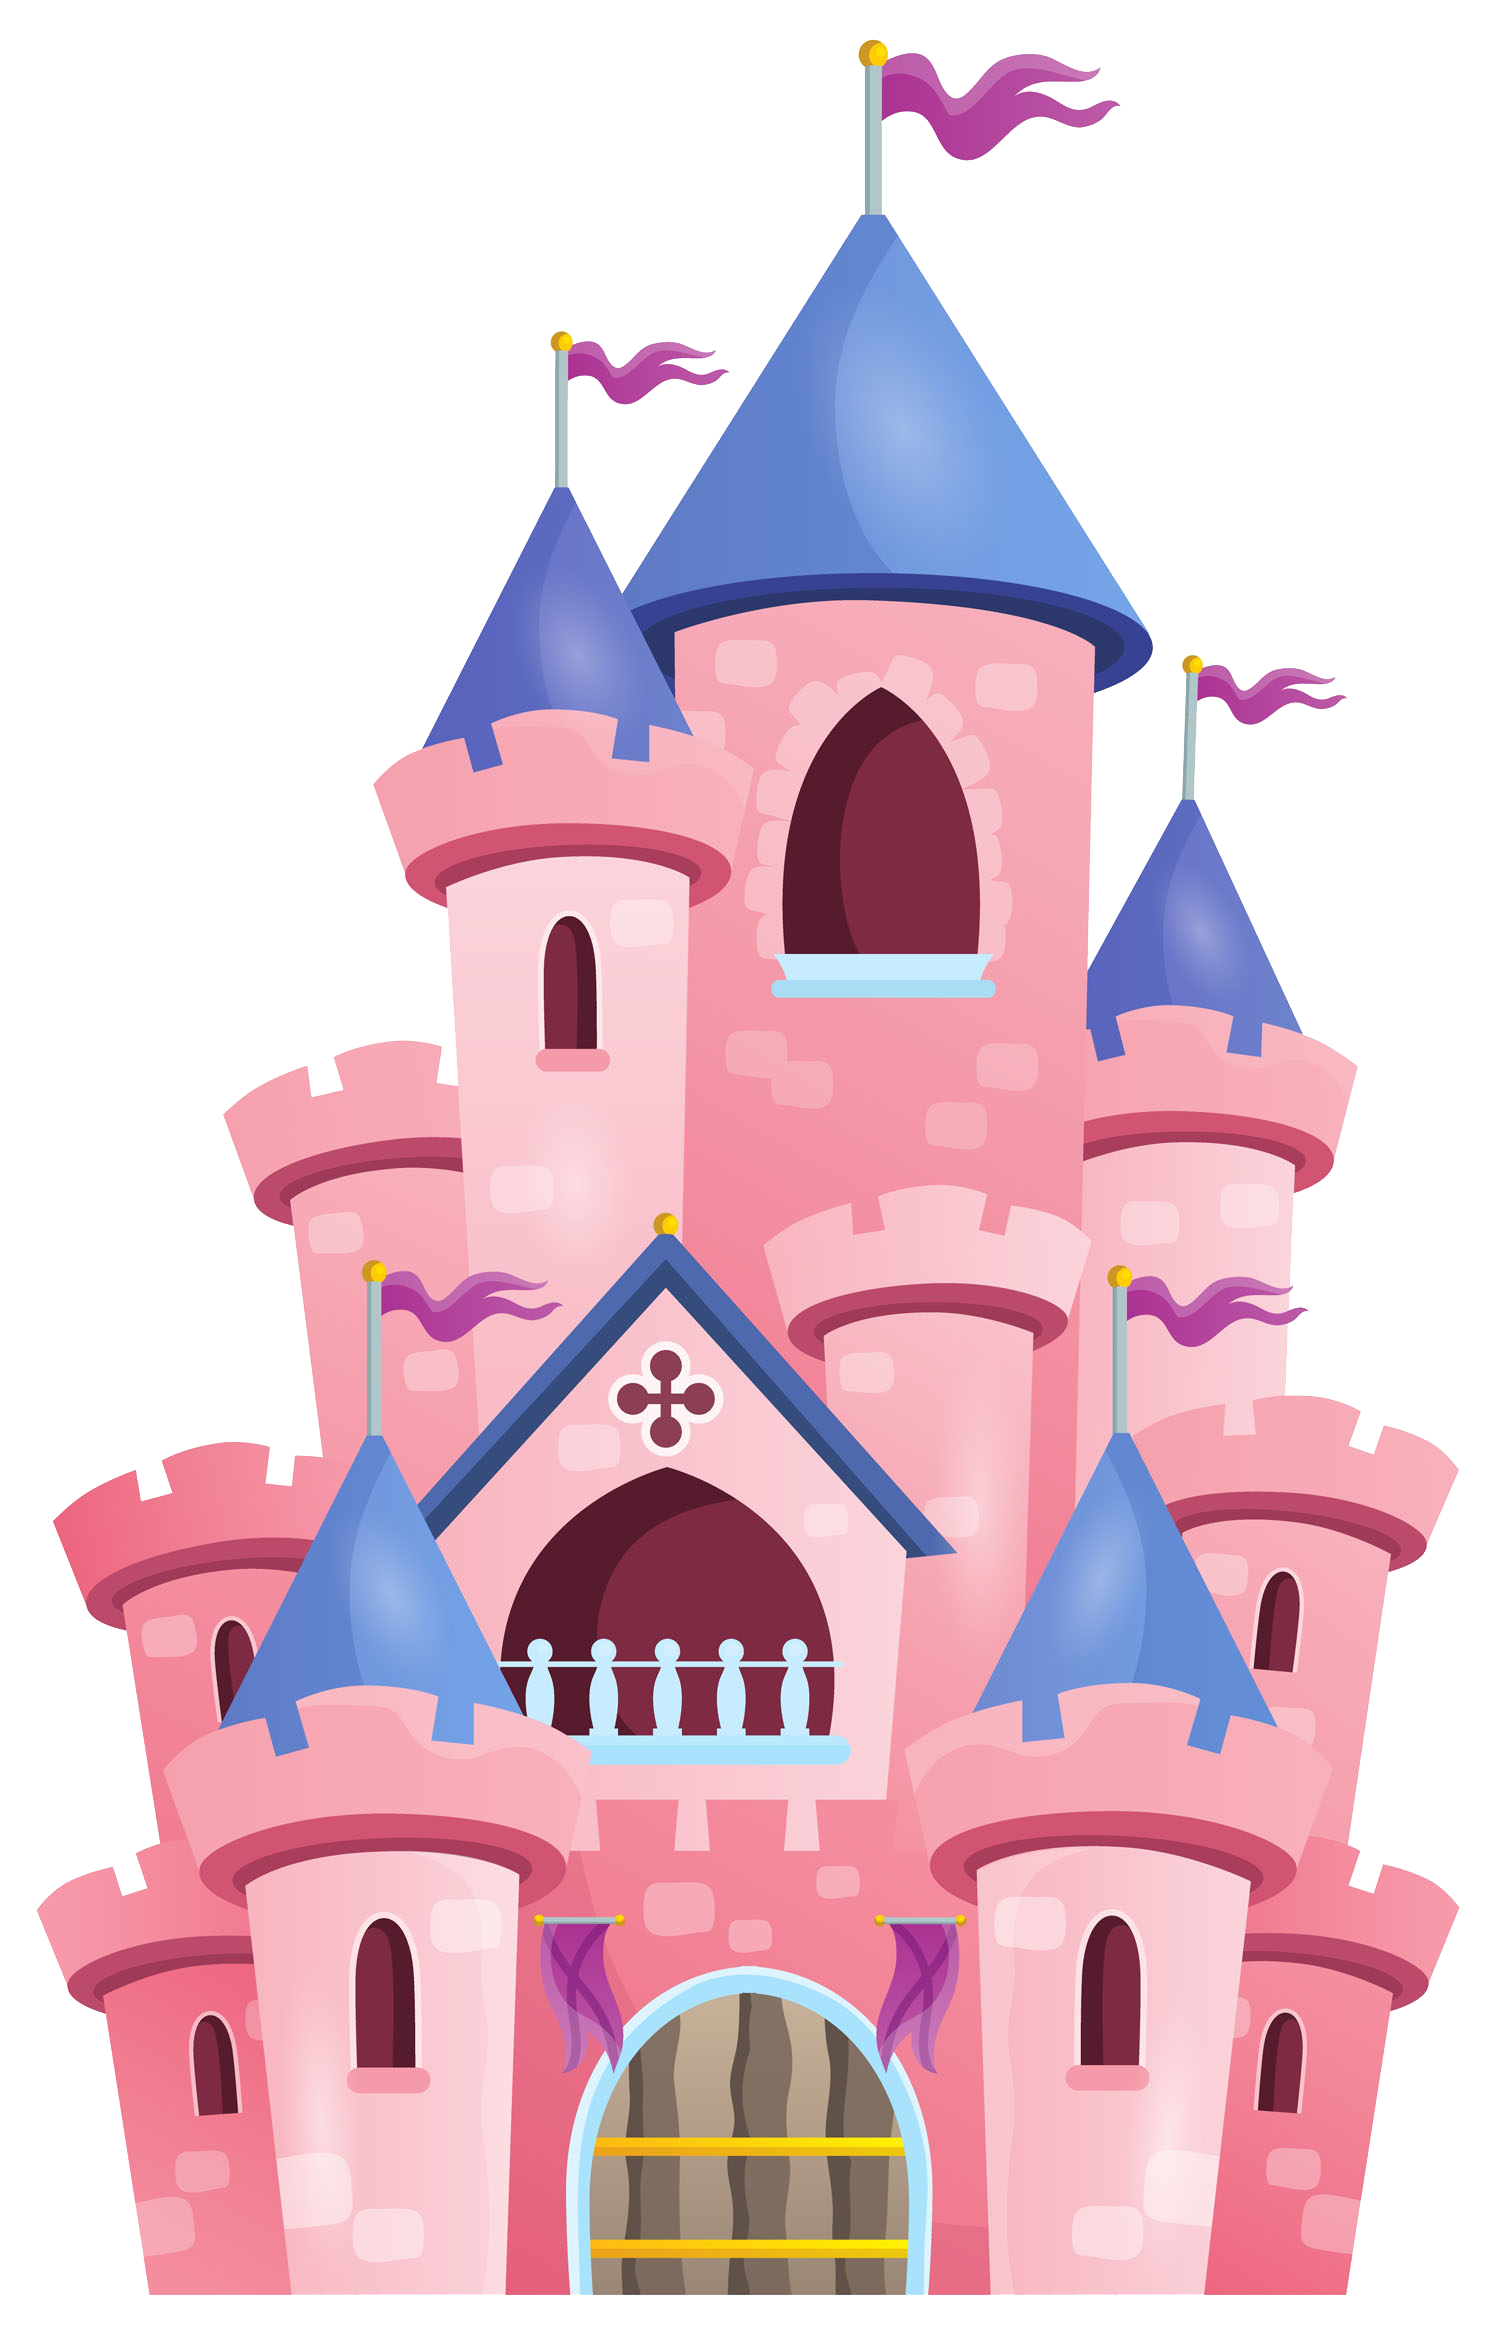 Palace clipart tall castle. Royalty free princess illustration